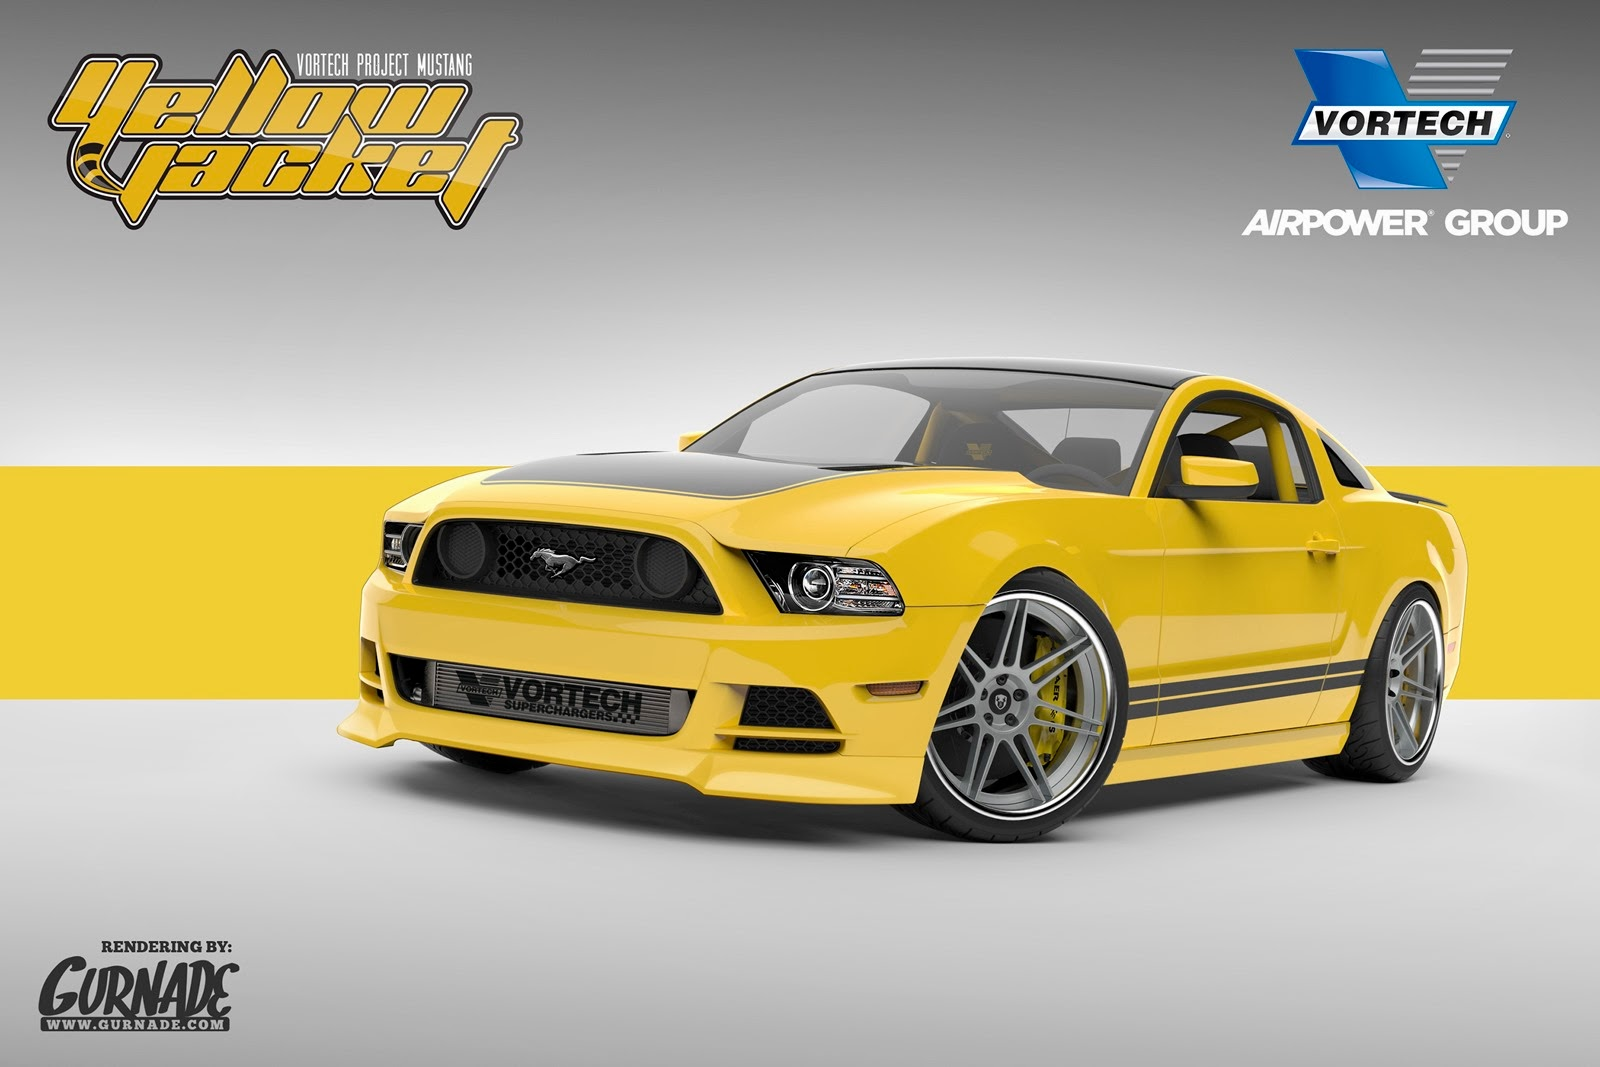 Ford Mustang diện lớp